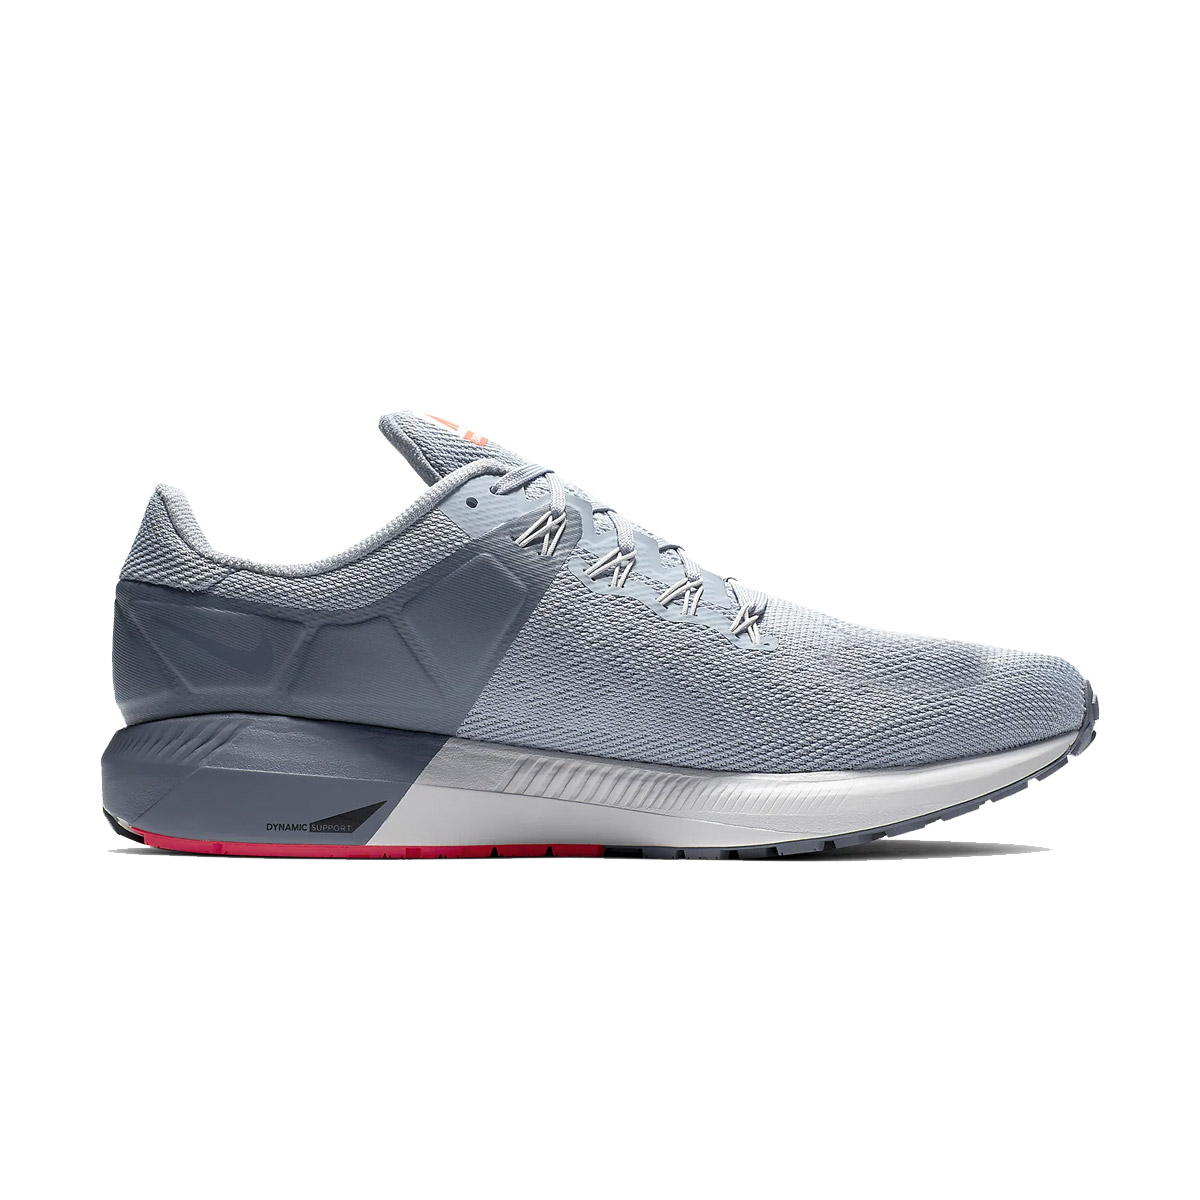 new style 2dfd0 6f11e Nike Men's Air Zoom Structure 22 Running Shoes - Obsidian Mist ...